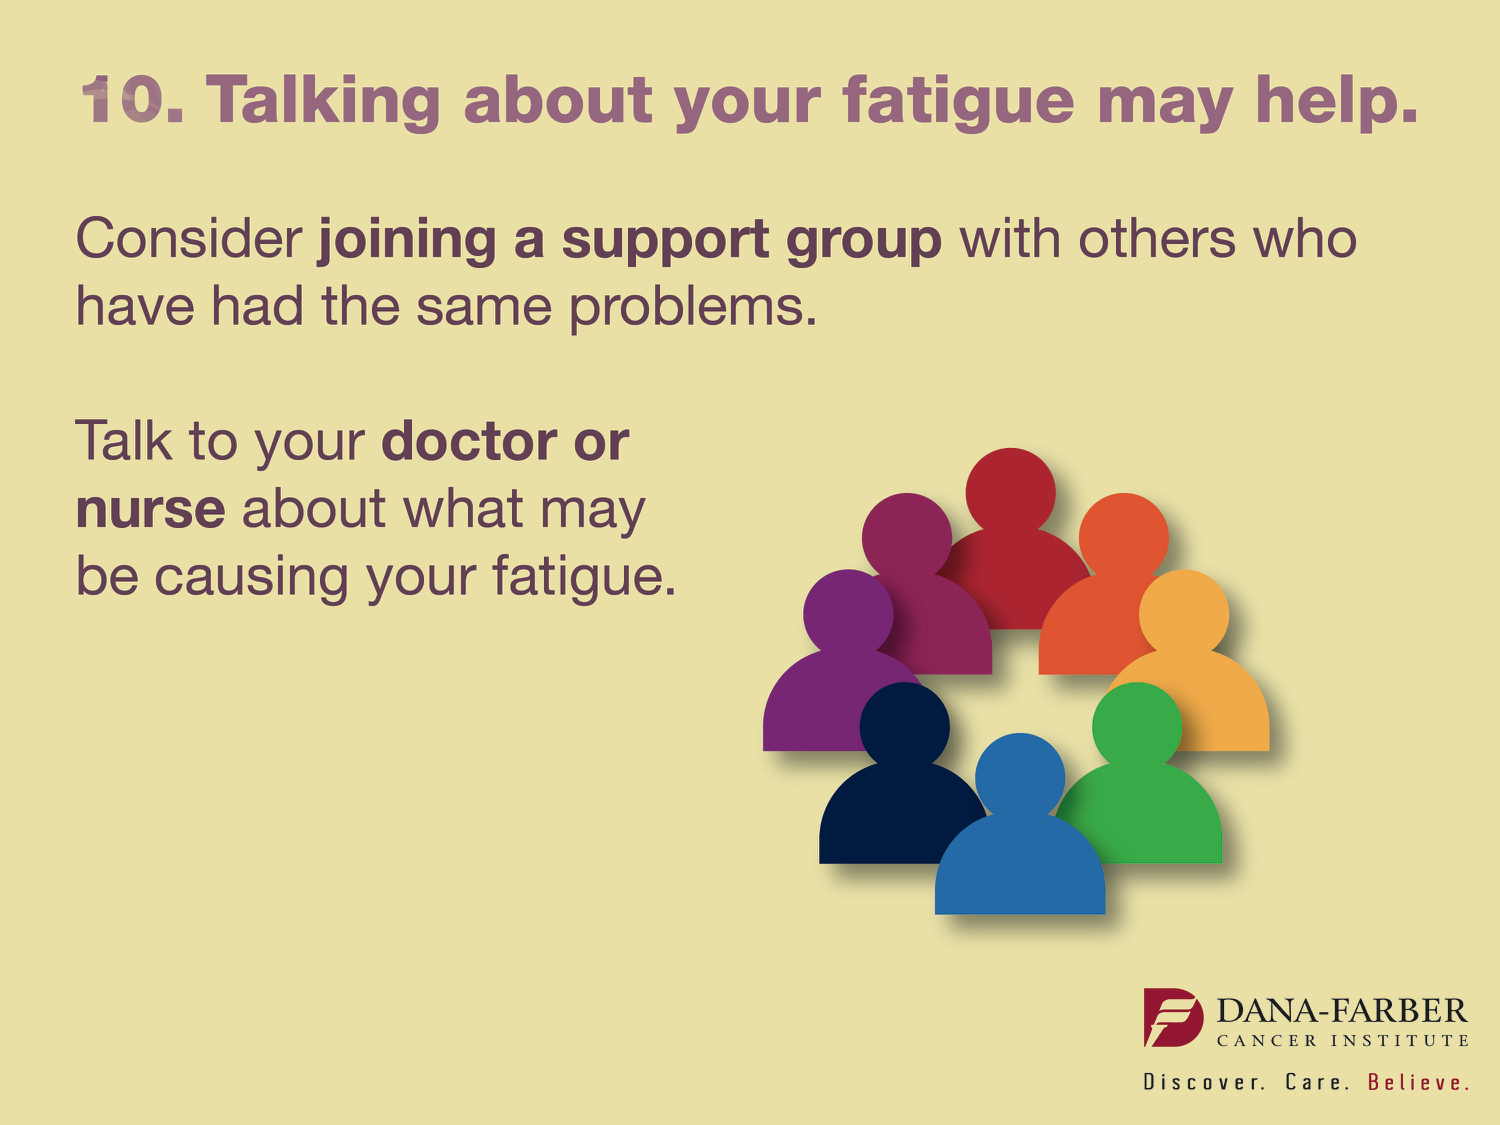 Learn more from Dana-Farber's Health Library